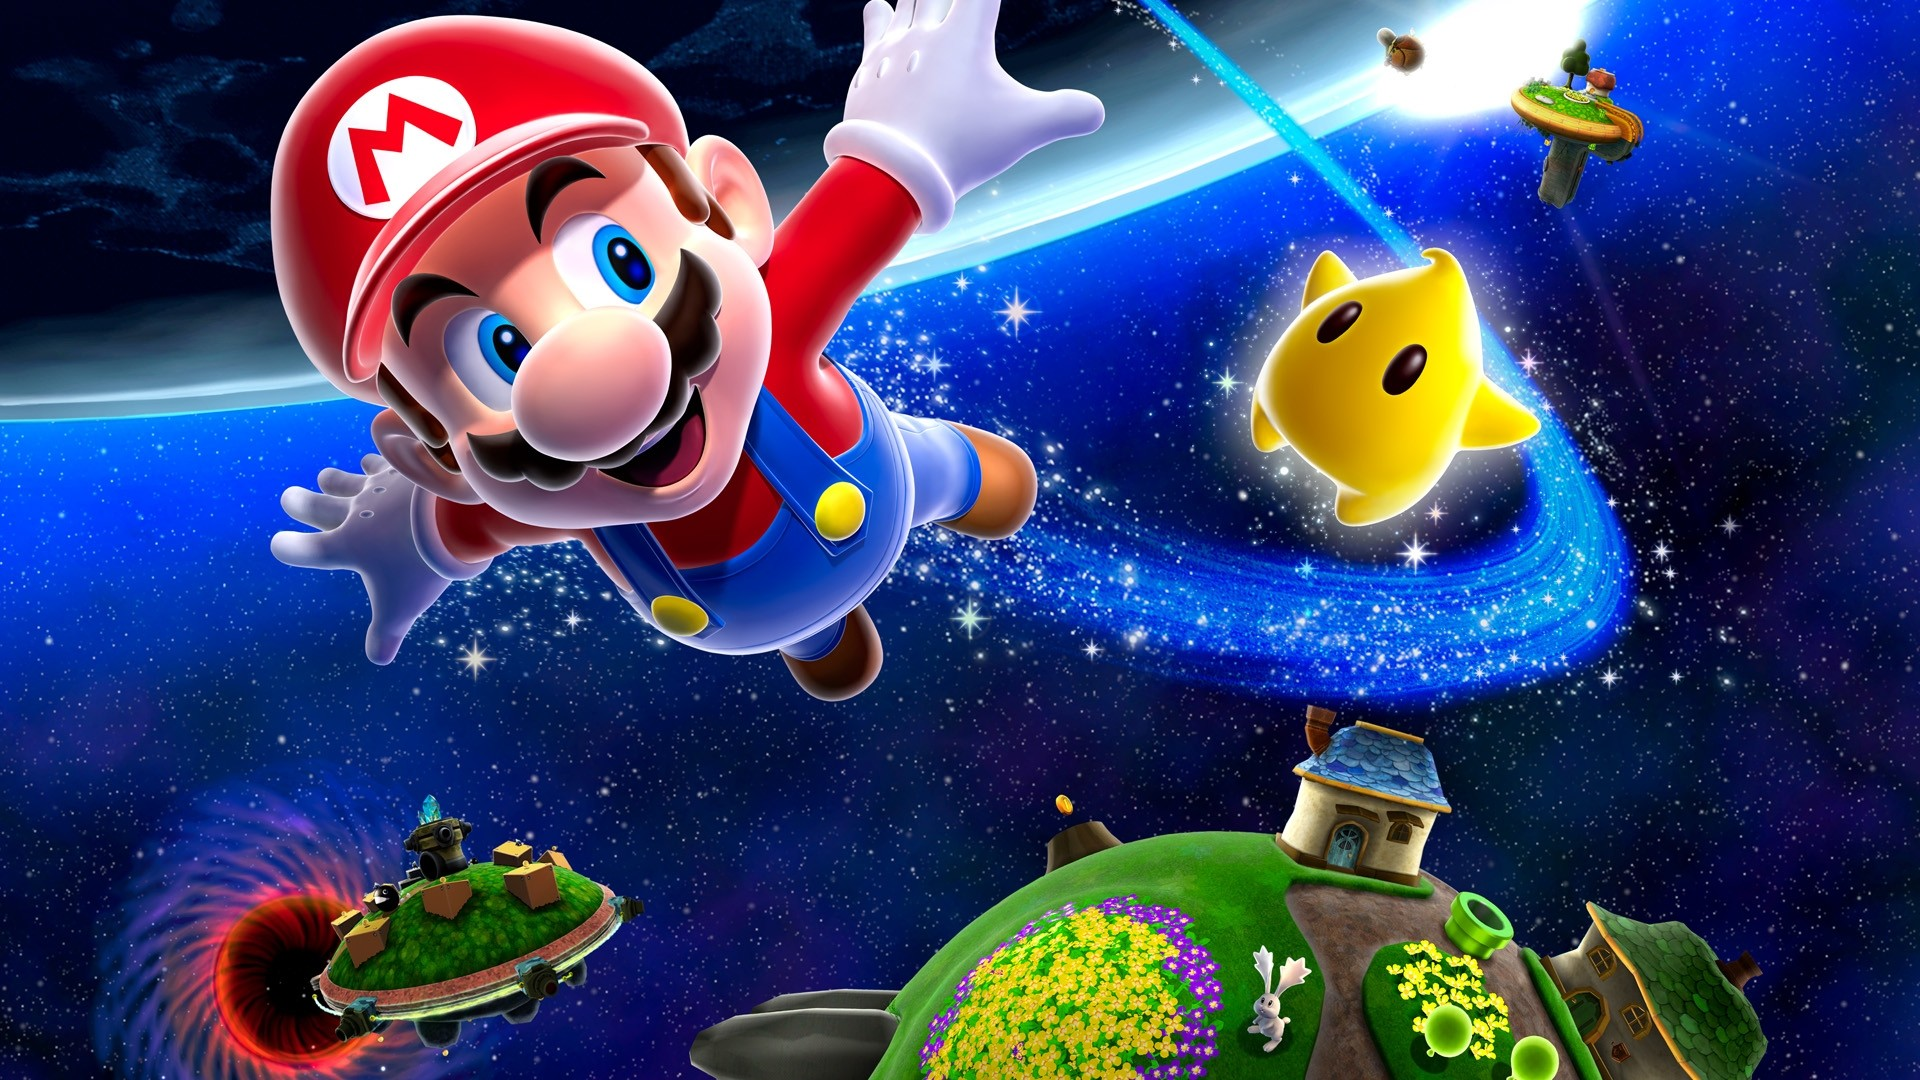 Wallpaper mario hd gratuit t l charger sur ngn mag for Fond ecran gaming